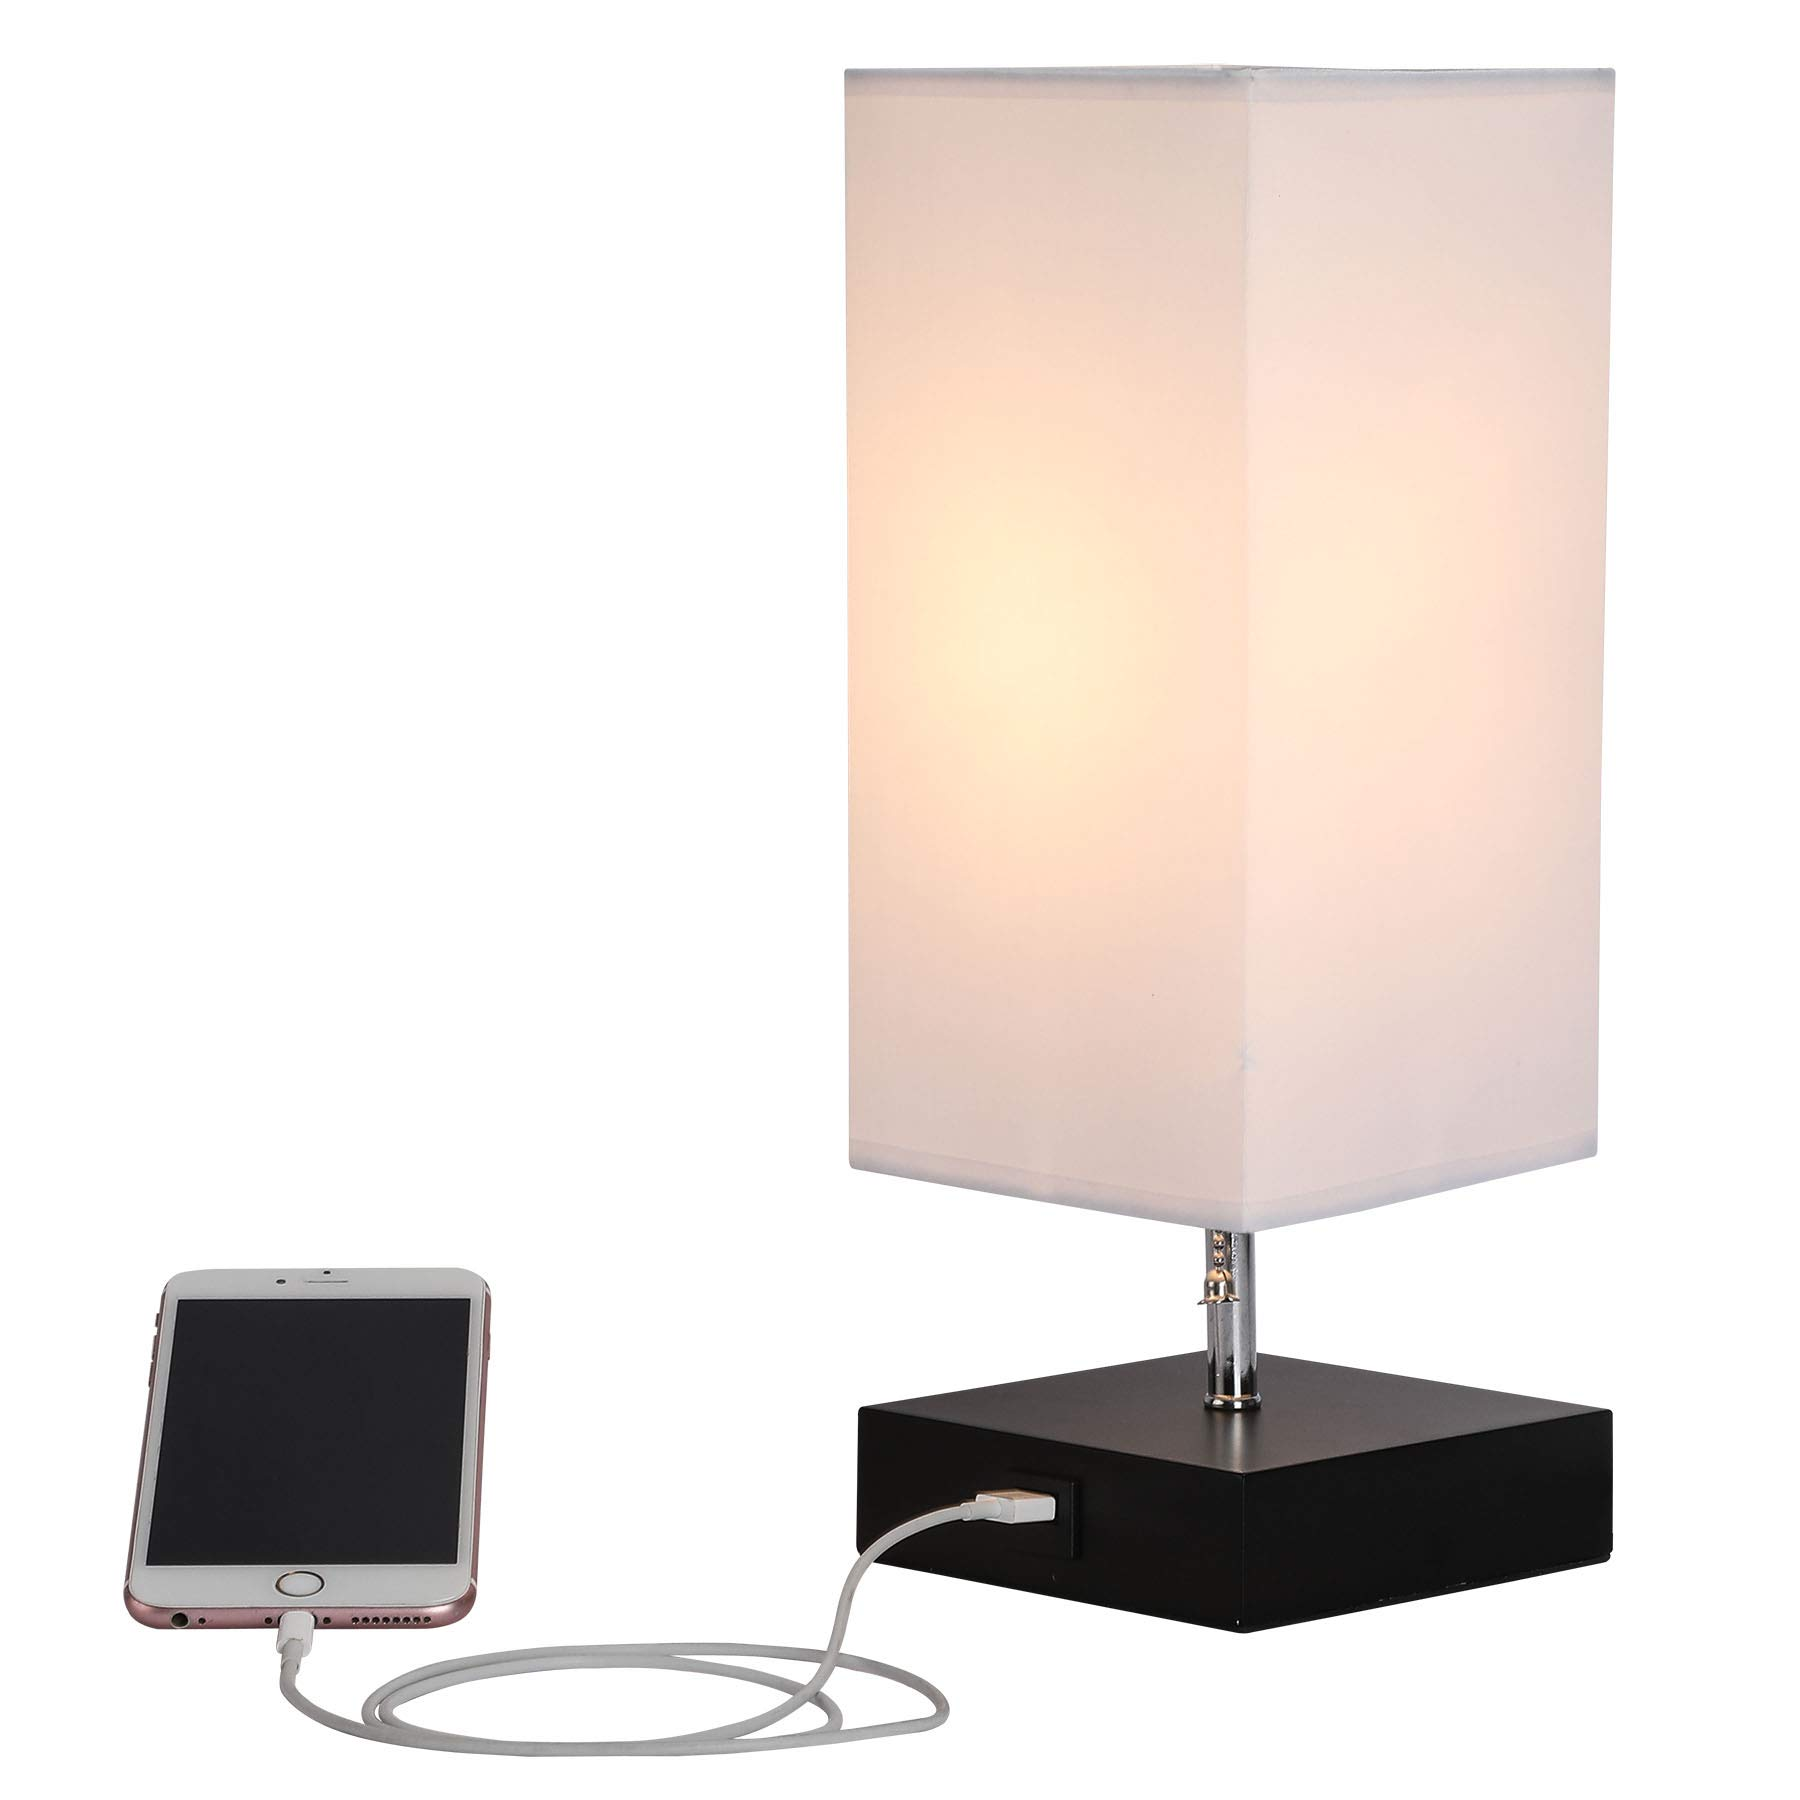 CO-Z Table Lamp with Solid Wood Base & USB Charger, Minimalist Bedside Lamp Fabric White Shade, 10'' Height for Desk Office Bedroom Nightstand (Black)